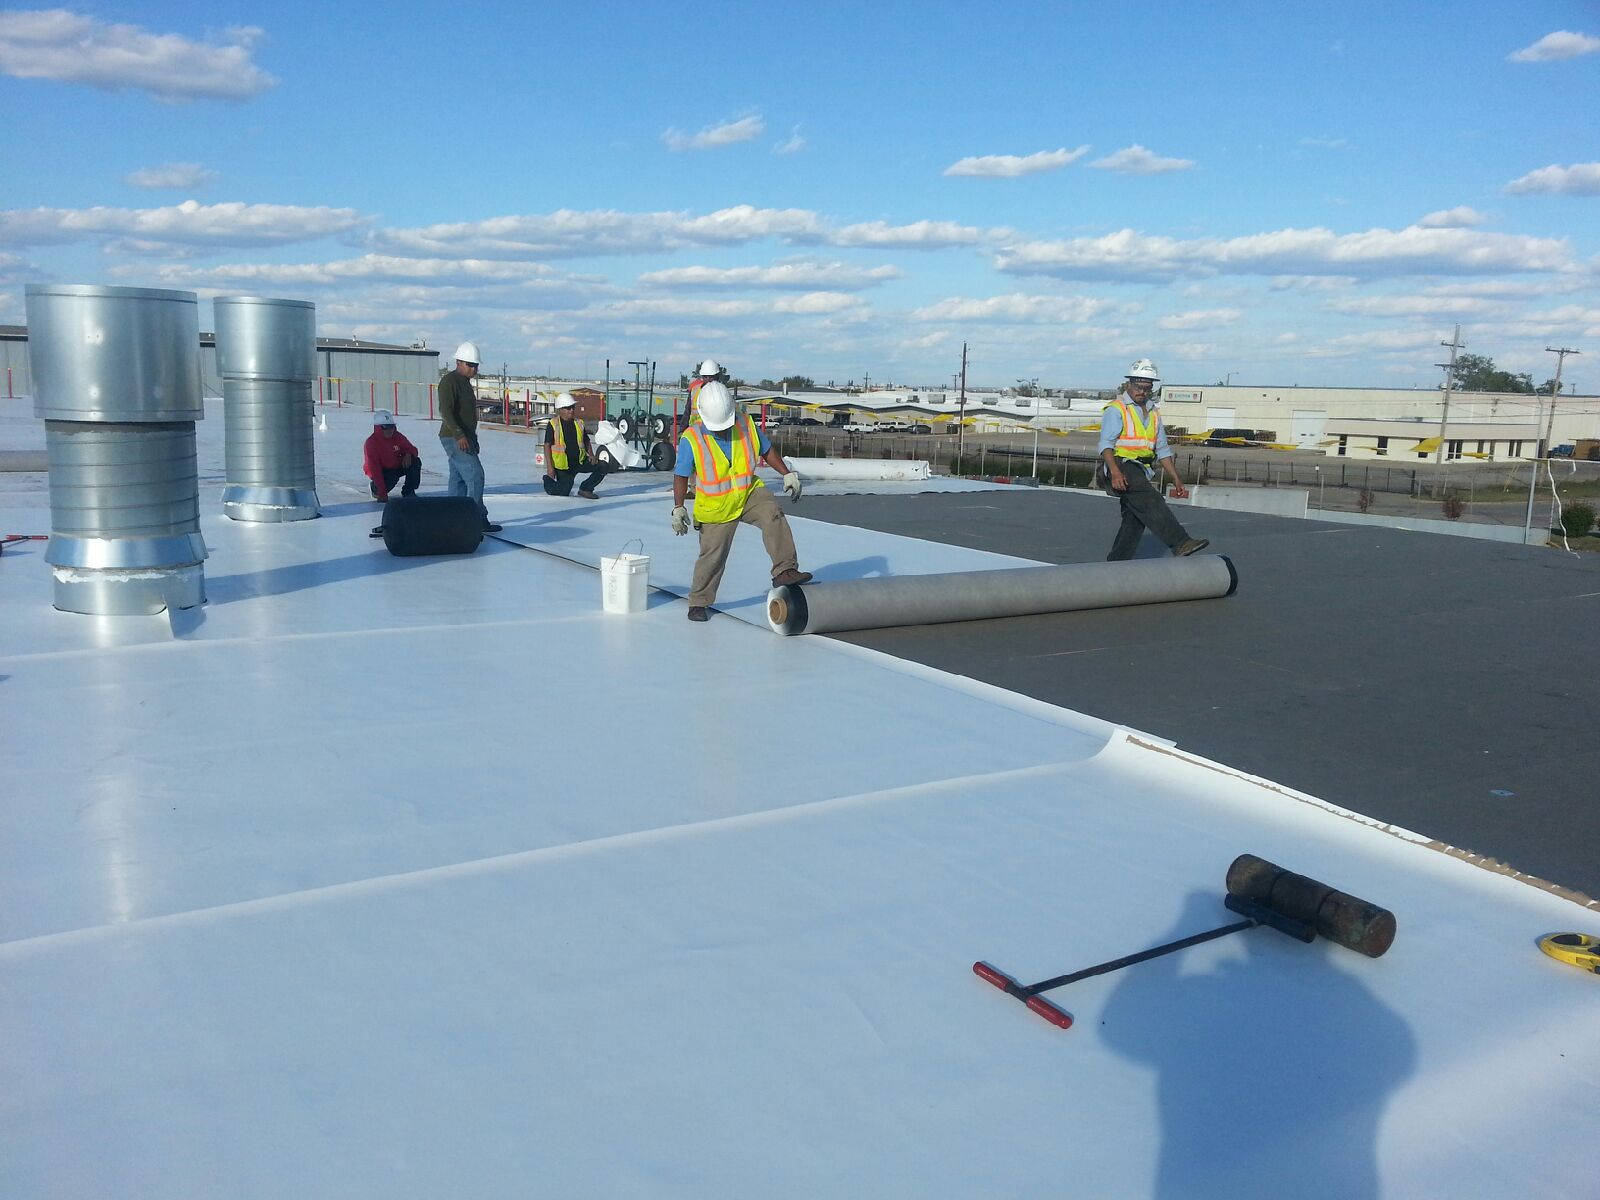 Types of commercial roofing advancements